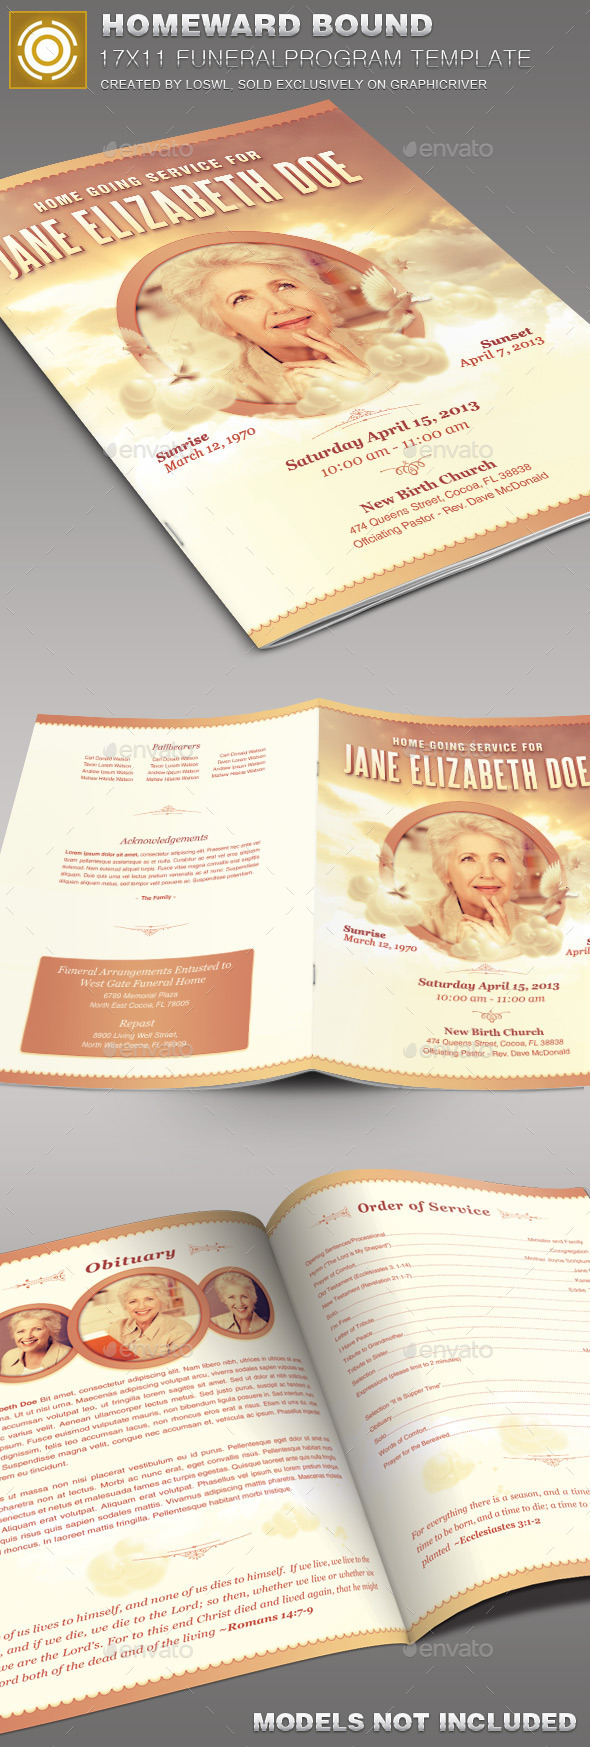 Homeward Bound Funeral Program Template 003 - Informational Brochures